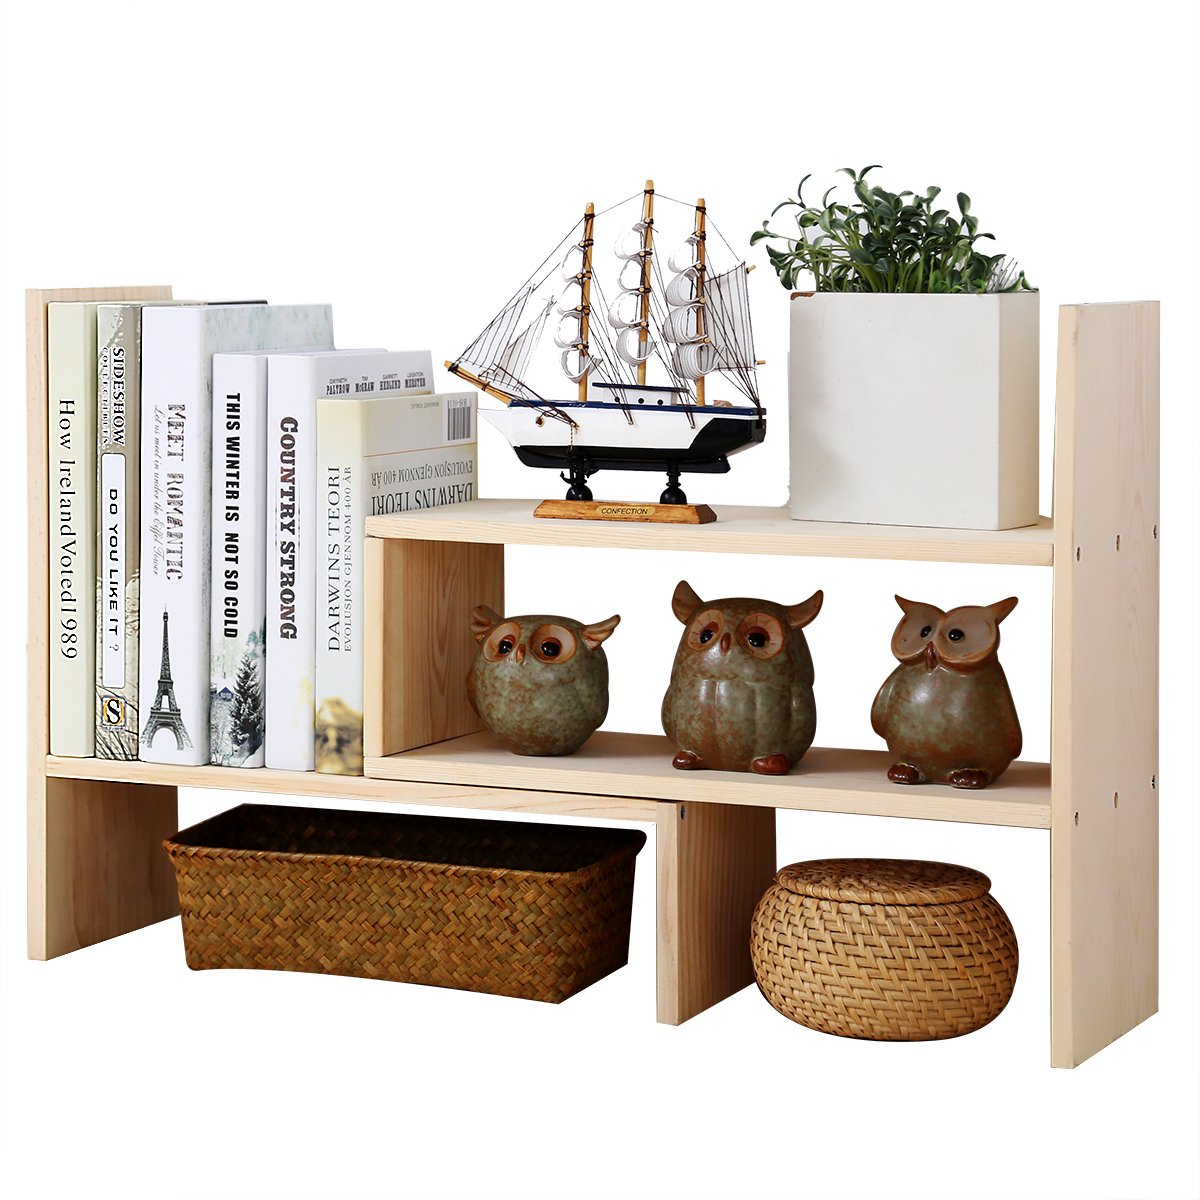 Adjustable Desktop Bookshelf, Creatwo Natural Wood Desktop Storage Organizer, Counter Top Bookcase, Beige